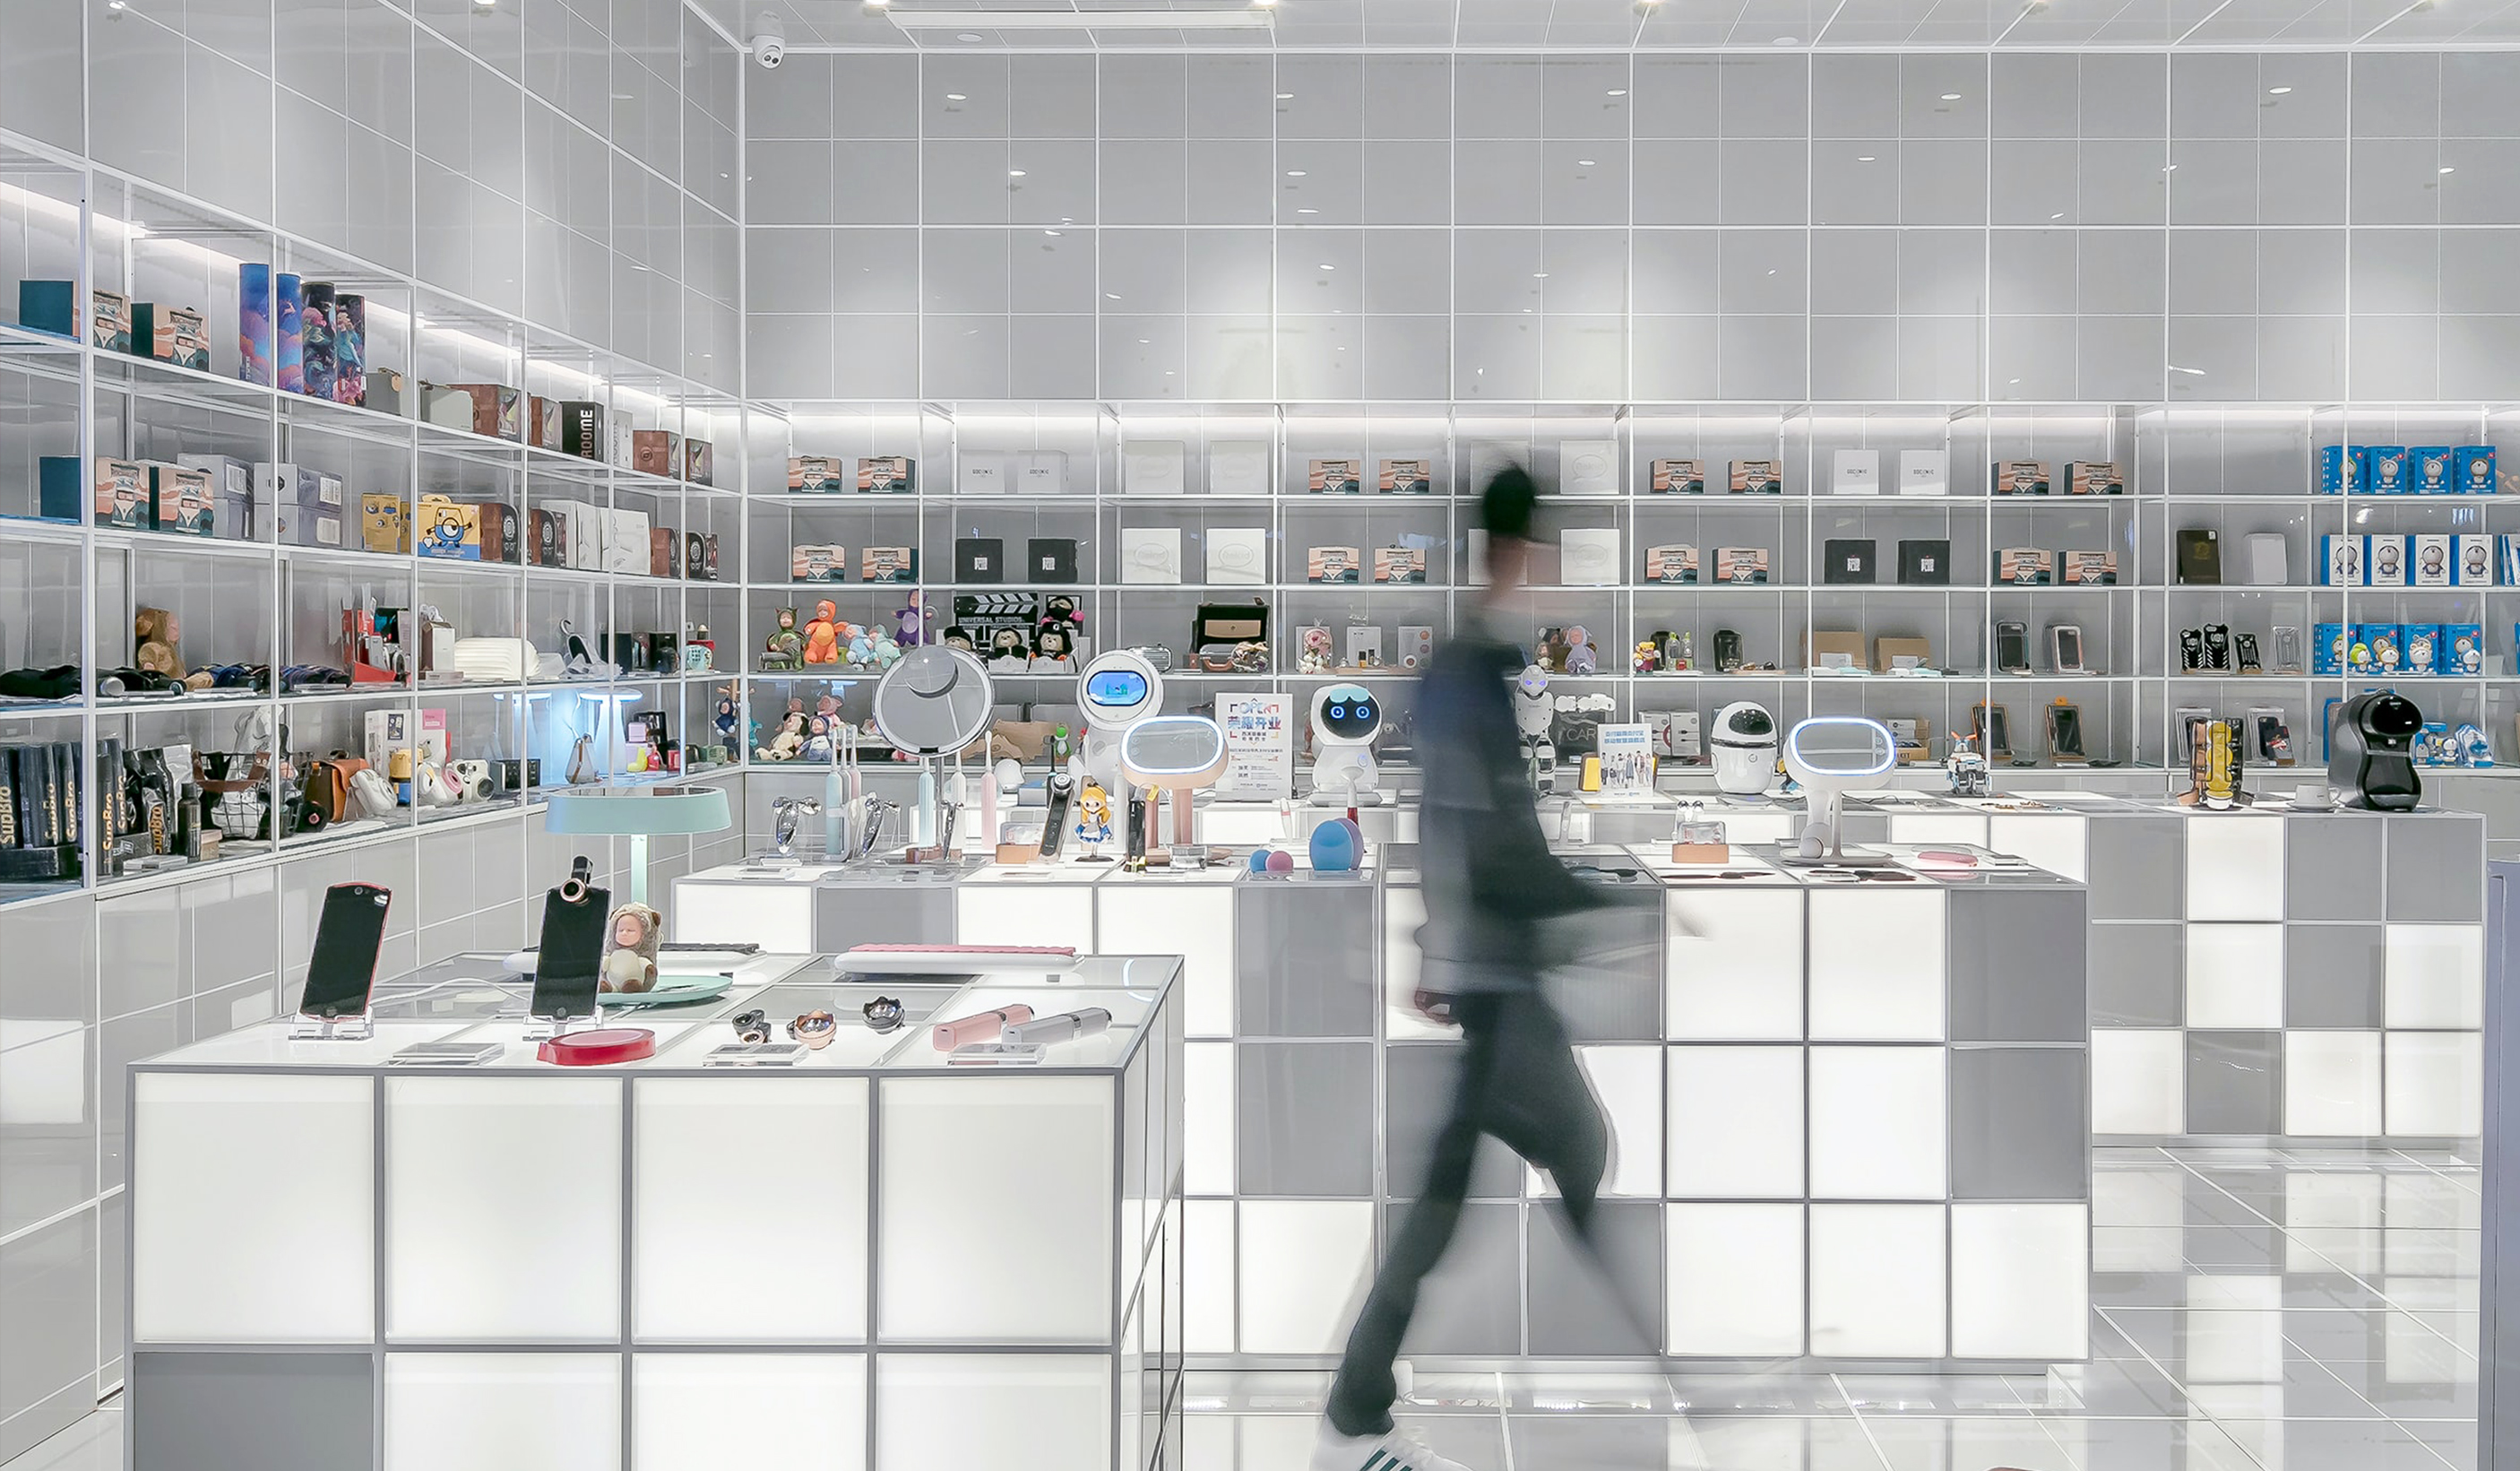 The Benefits of Comprehensive Data Integration in Retail Environments